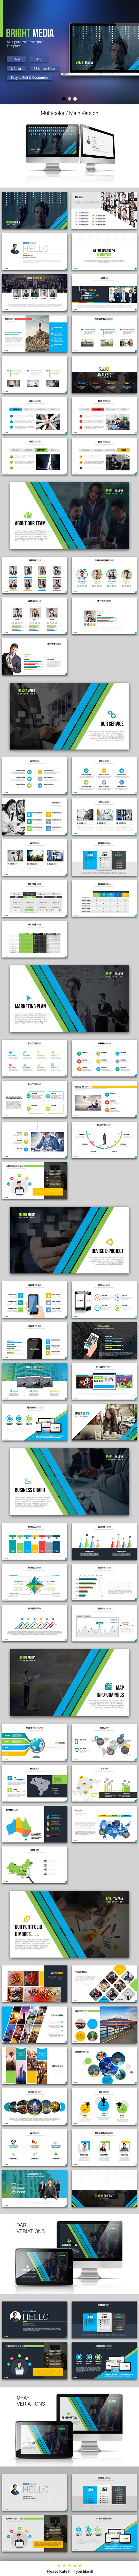 Bright Media Powerpoint Presentation Template - Business PowerPoint Templates